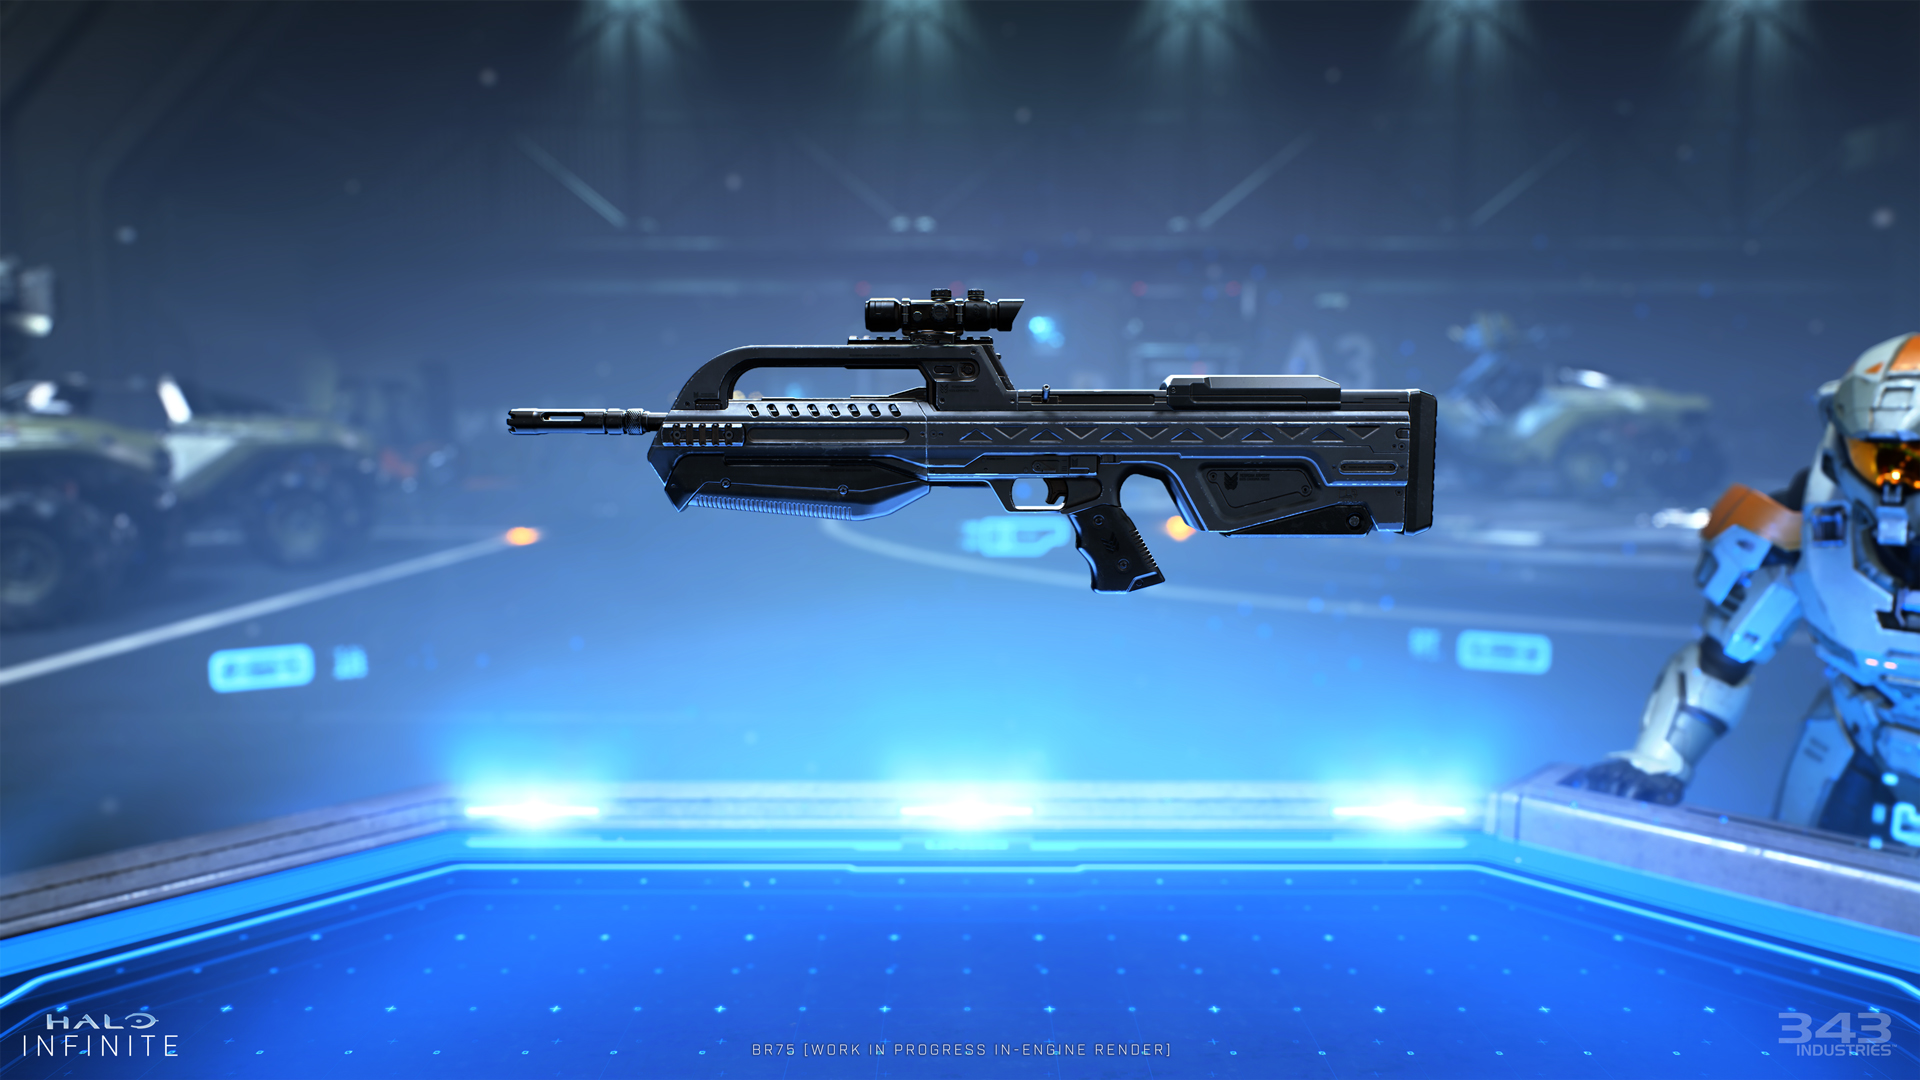 343 Industries displays images and information on some weapons available in Halo Infinite